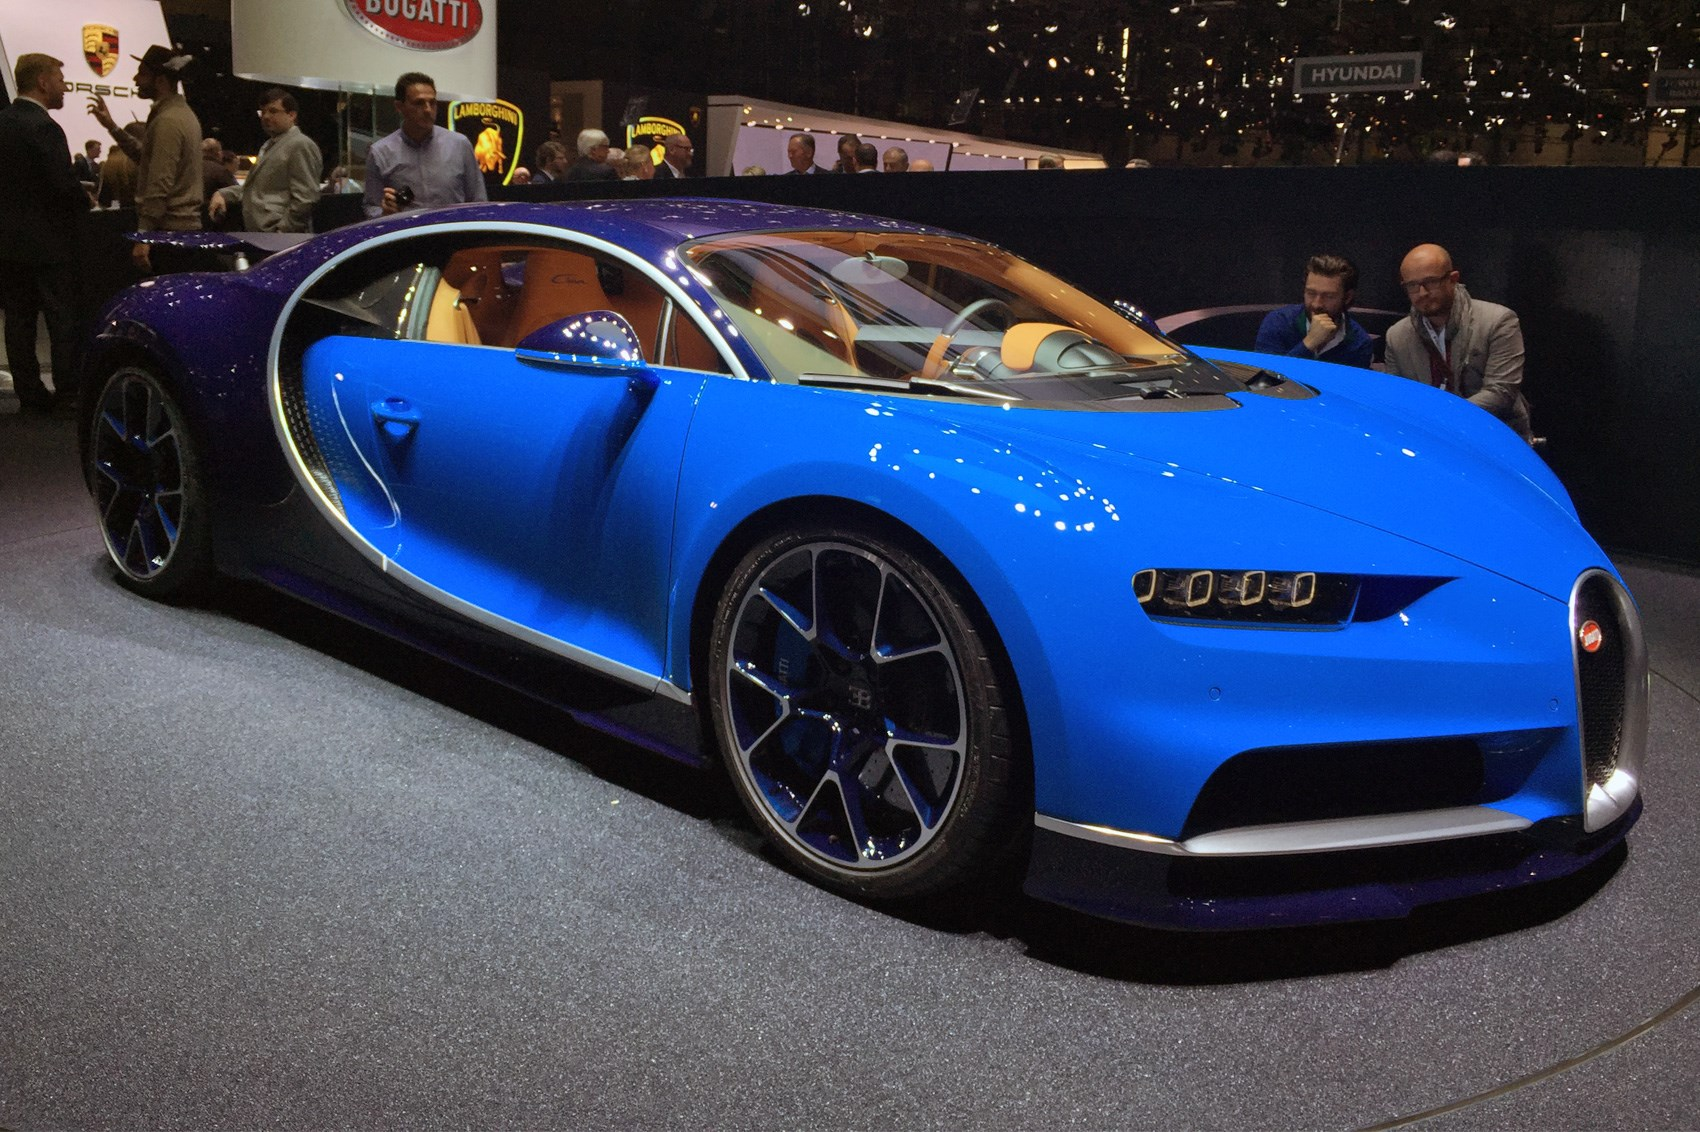 Ultrablogus  Gorgeous Bugatti Is Go New Chiron Name Confirmed Here At Geneva  By  With Foxy Bugatti Chiron Revealed At Geneva  The World Has A New Fastest Production Car With Delightful Tigra Interior Also Citation Xls Interior In Addition Ostrich Car Interior And Freightliner Truck Interior As Well As Cessna Caravan Interior Additionally Beetle Accessories Interior From Carmagazinecouk With Ultrablogus  Foxy Bugatti Is Go New Chiron Name Confirmed Here At Geneva  By  With Delightful Bugatti Chiron Revealed At Geneva  The World Has A New Fastest Production Car And Gorgeous Tigra Interior Also Citation Xls Interior In Addition Ostrich Car Interior From Carmagazinecouk